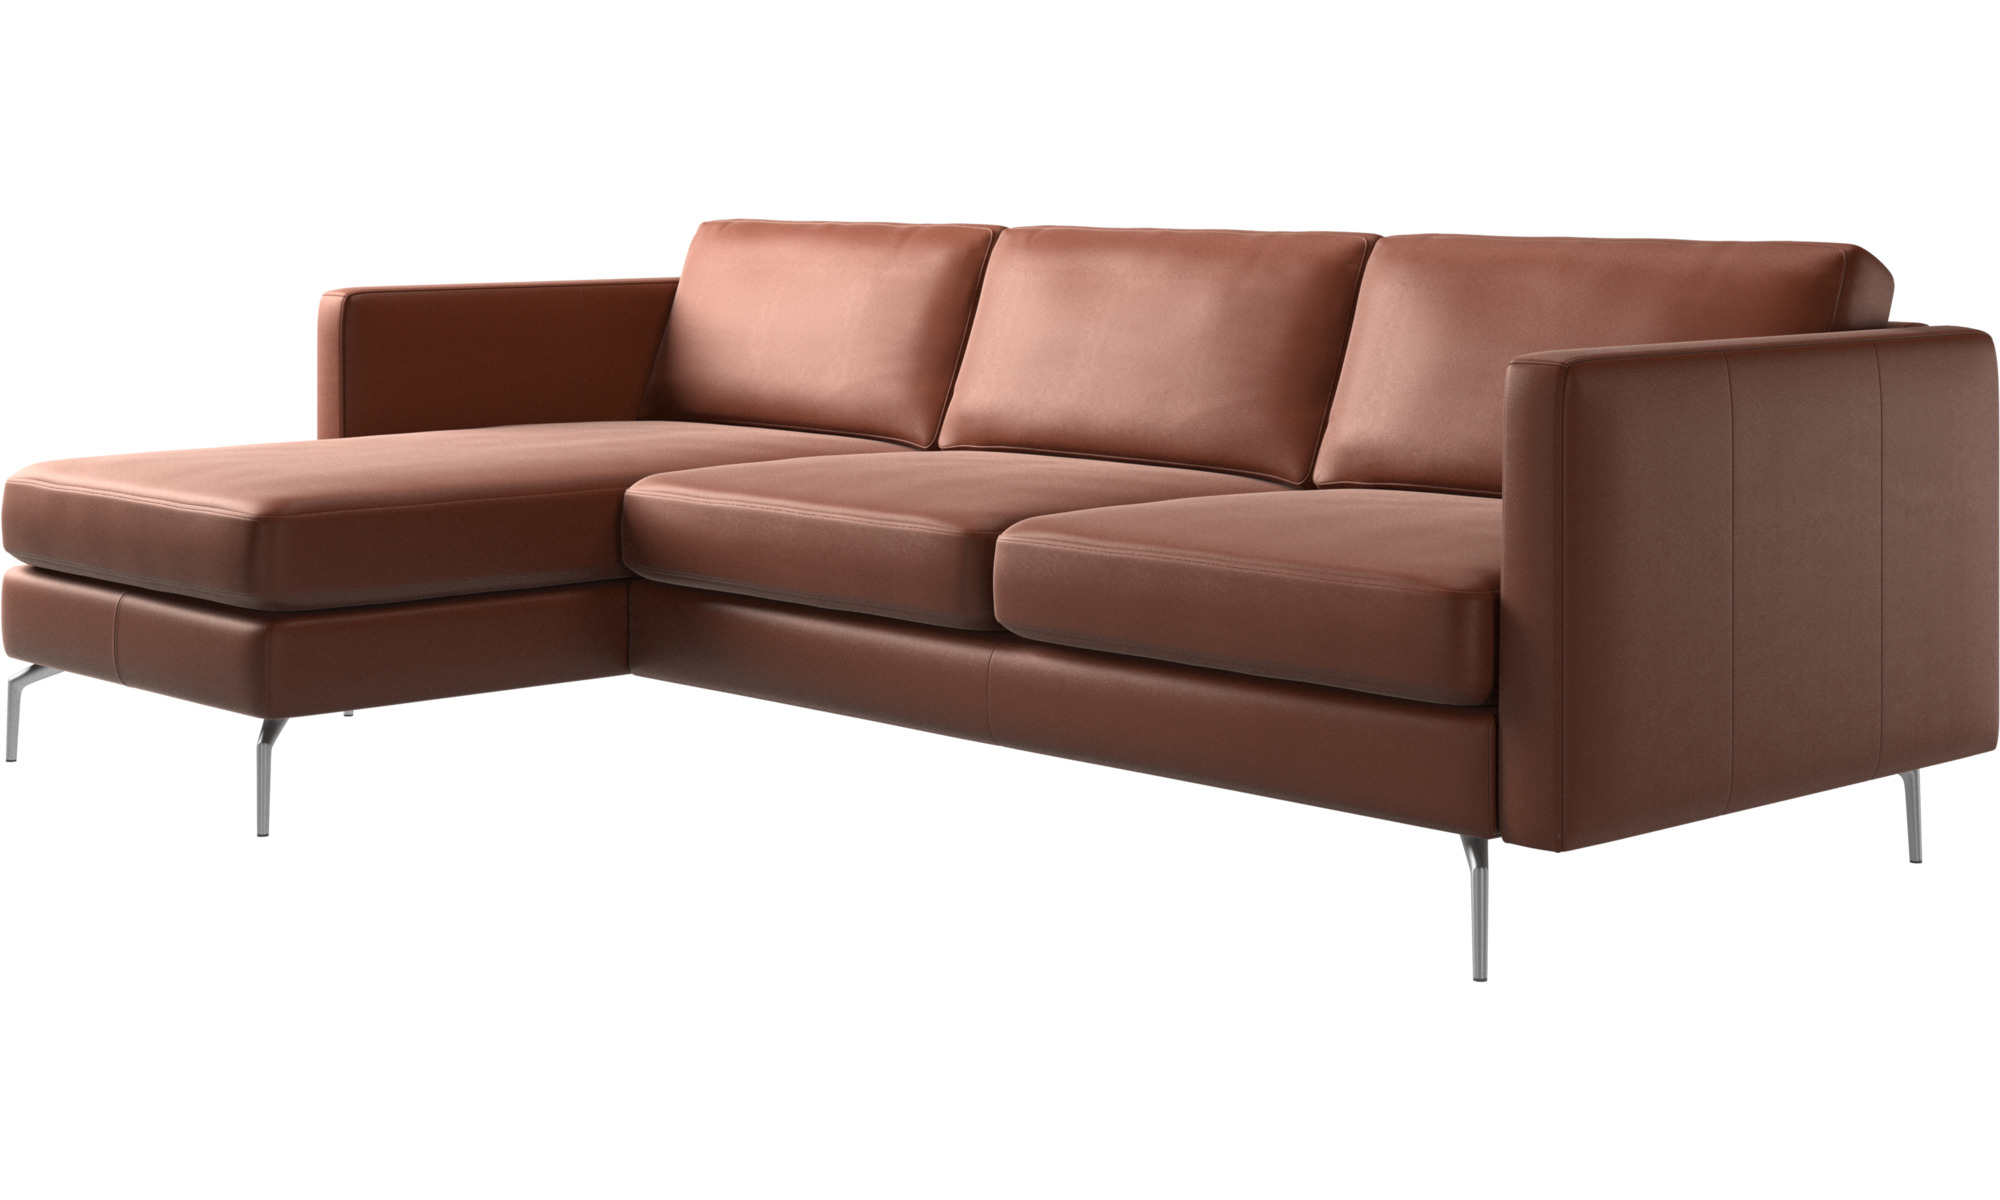 chaise lounge sofas osaka sofa with resting unit regular seat boconcept. Black Bedroom Furniture Sets. Home Design Ideas